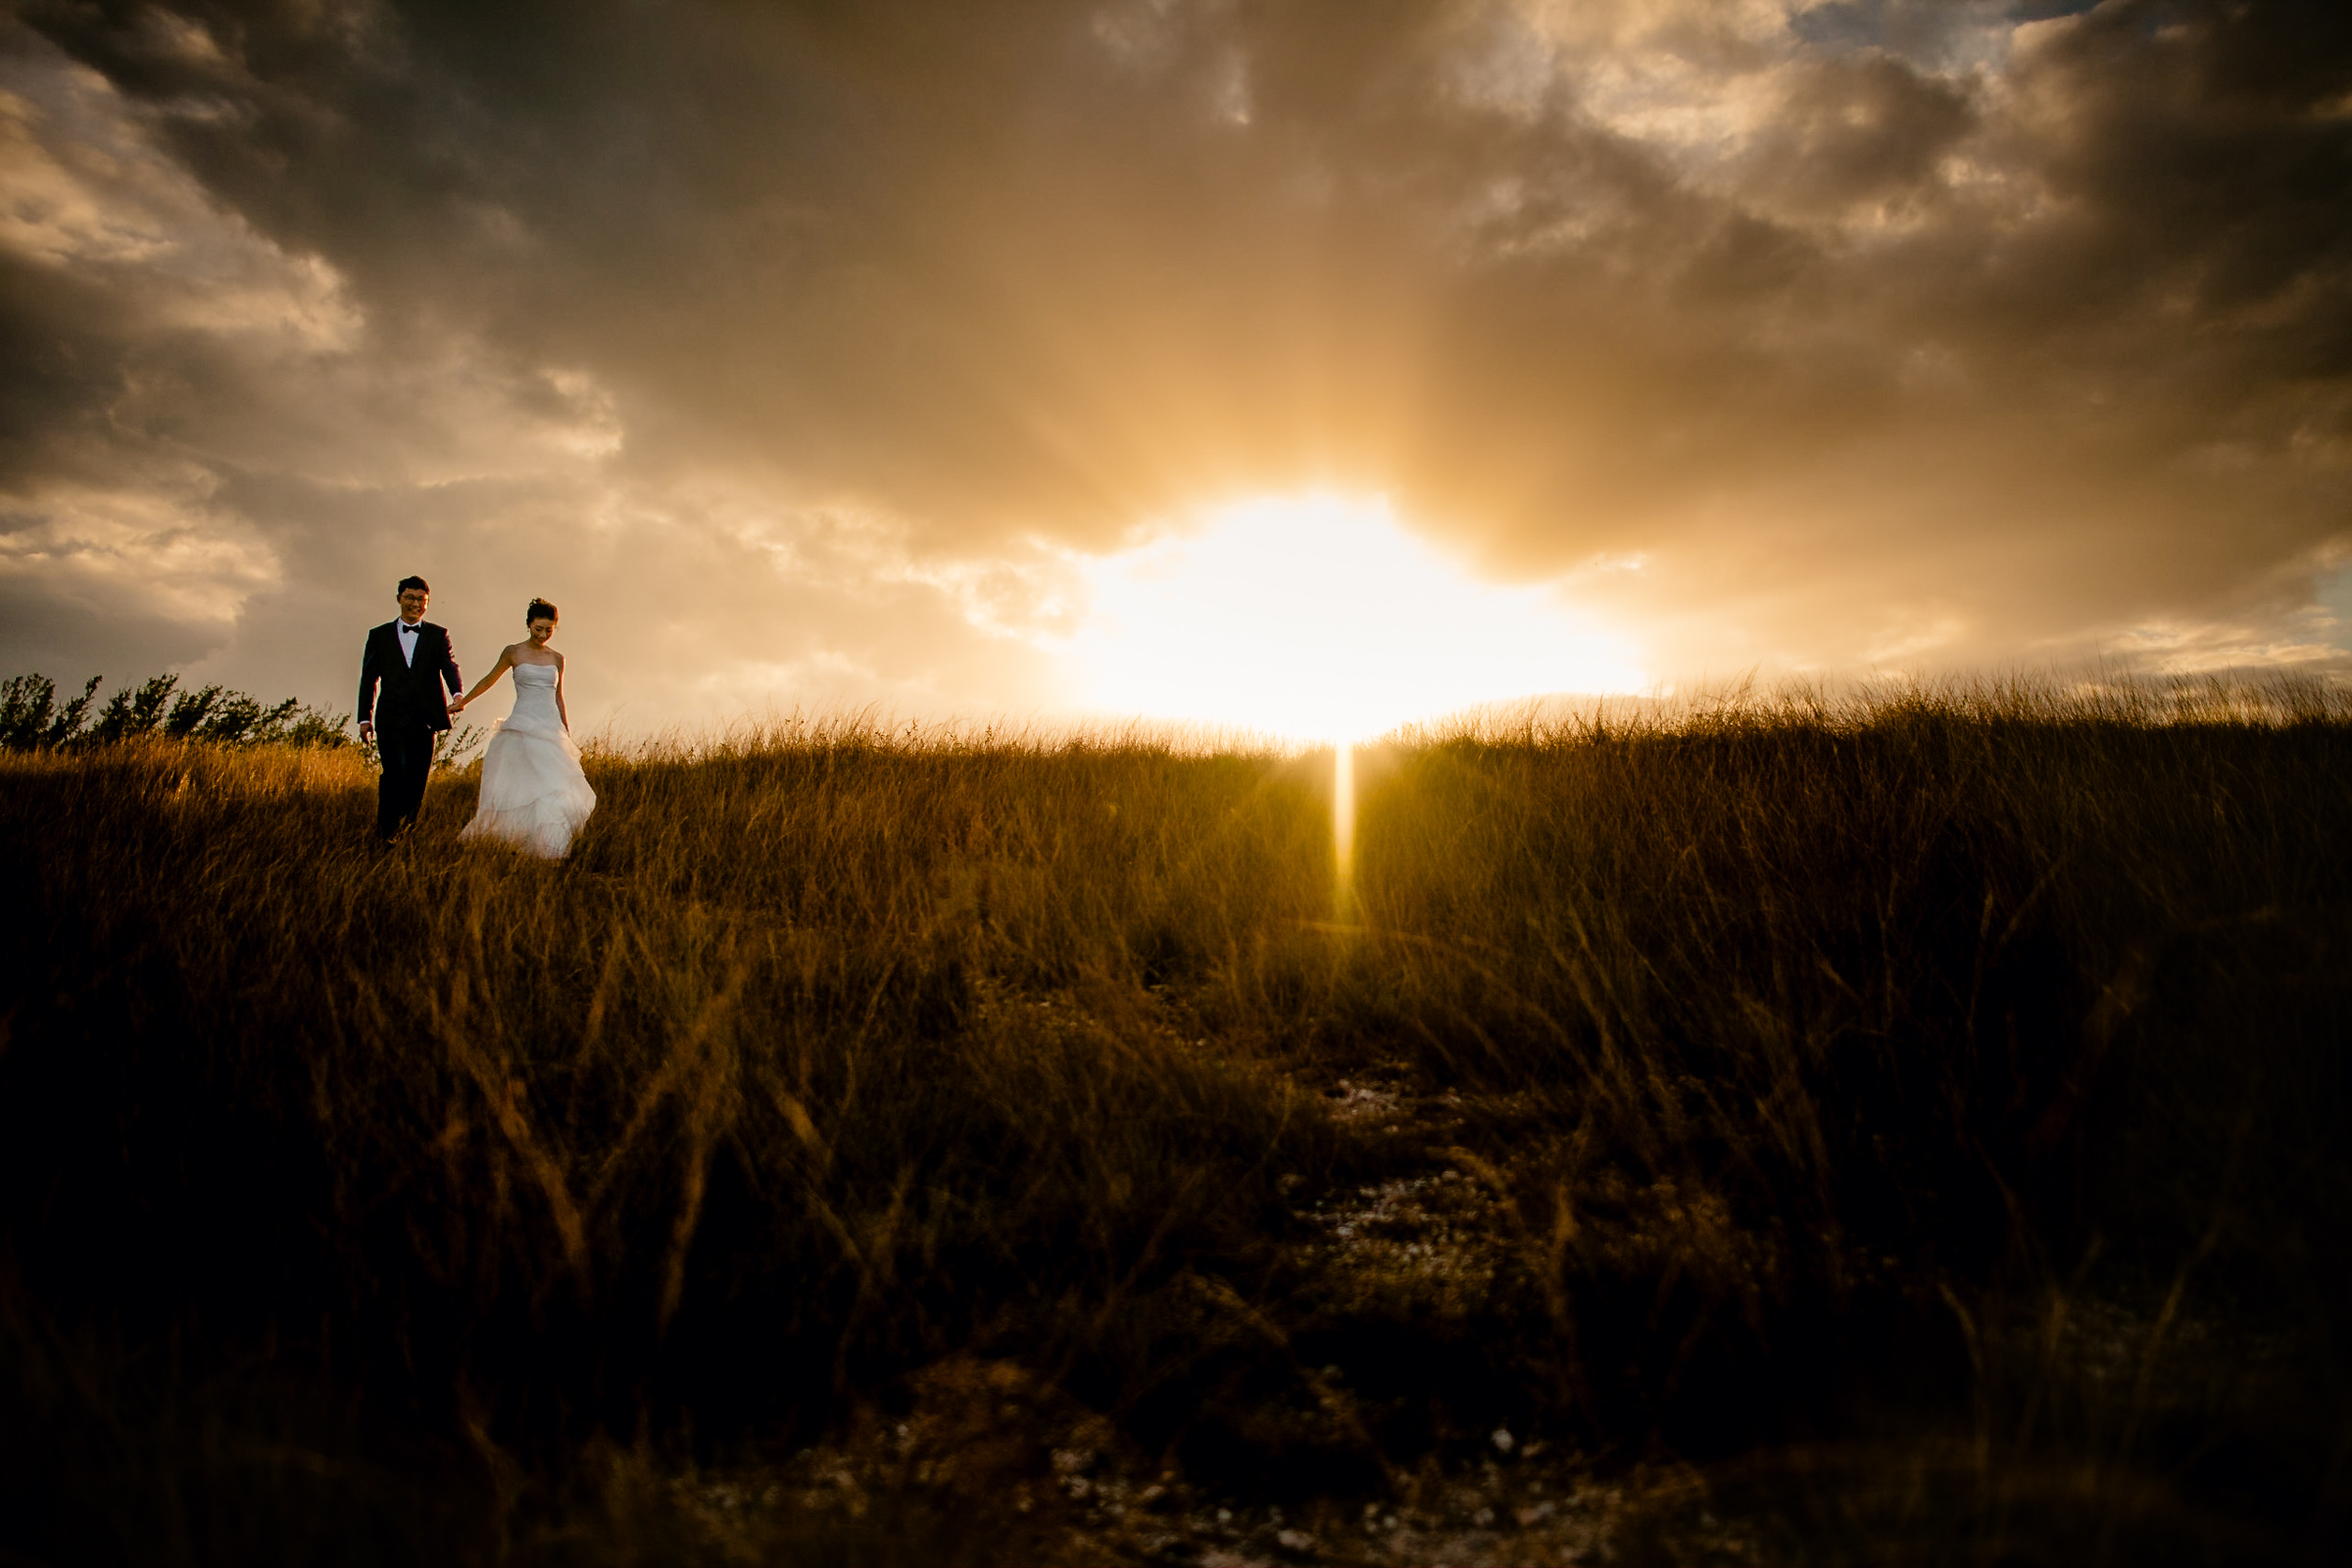 Couple portrait taken just before sunset - Photo by Michael Freas